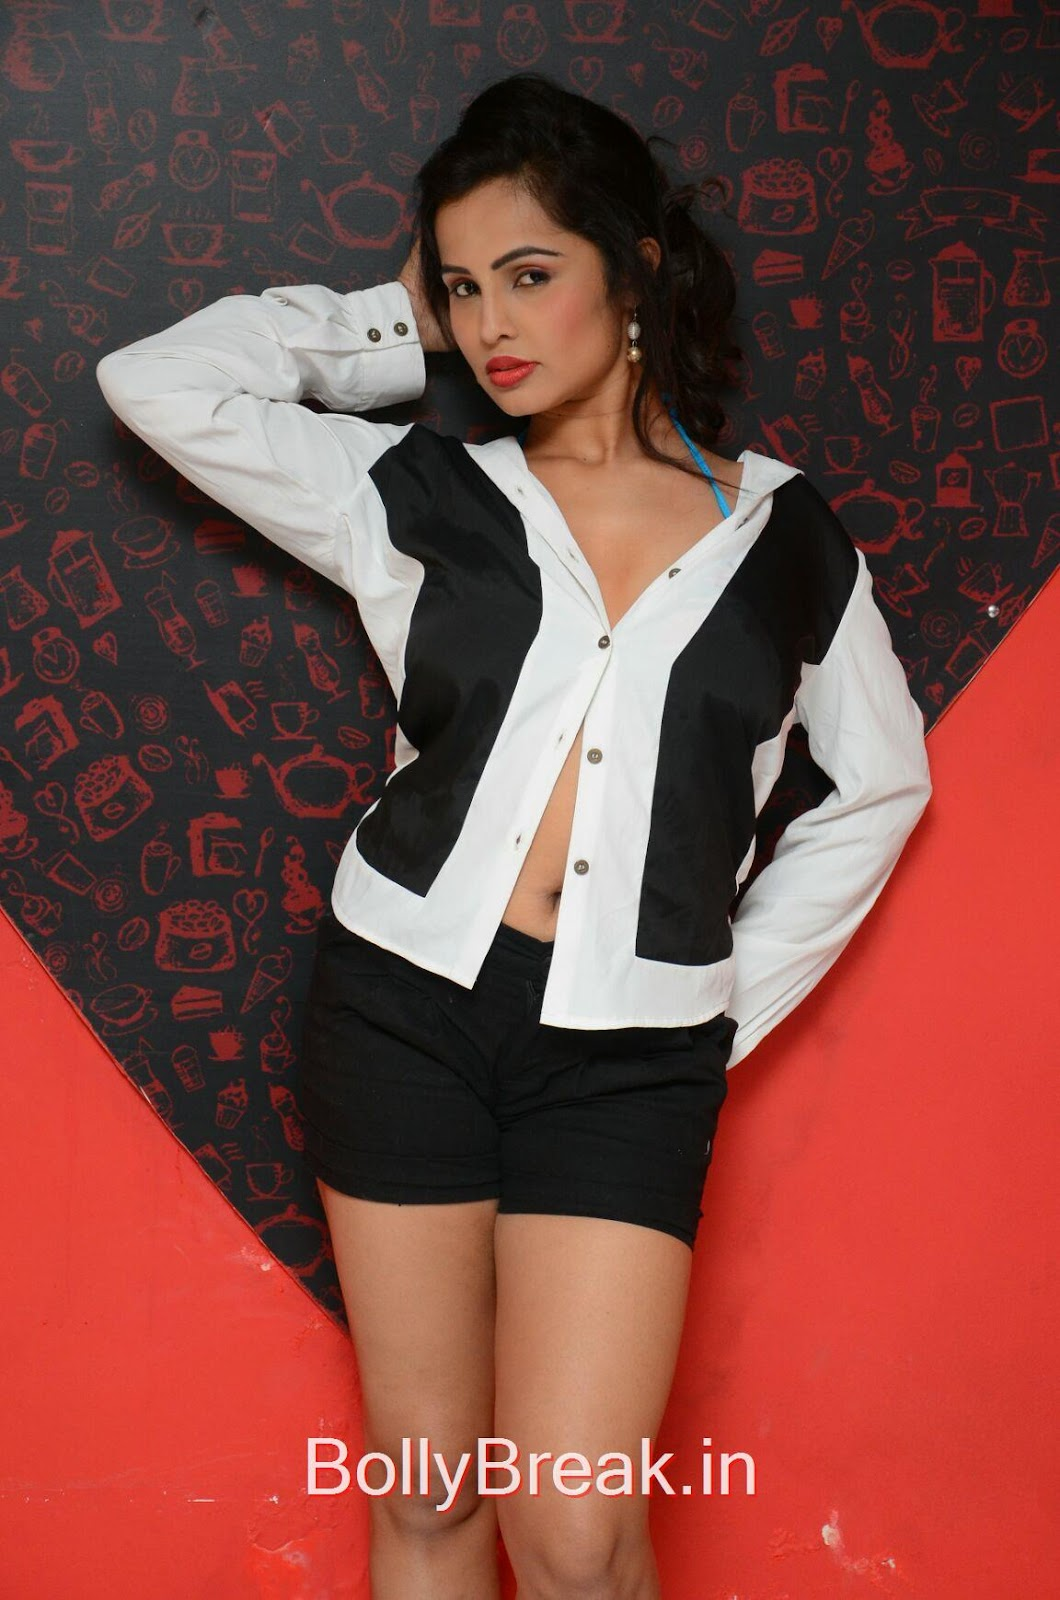 Hashika Dutt Pics, Hot HD Images of Hashika Dutt Phtoshoot in Black and White Top